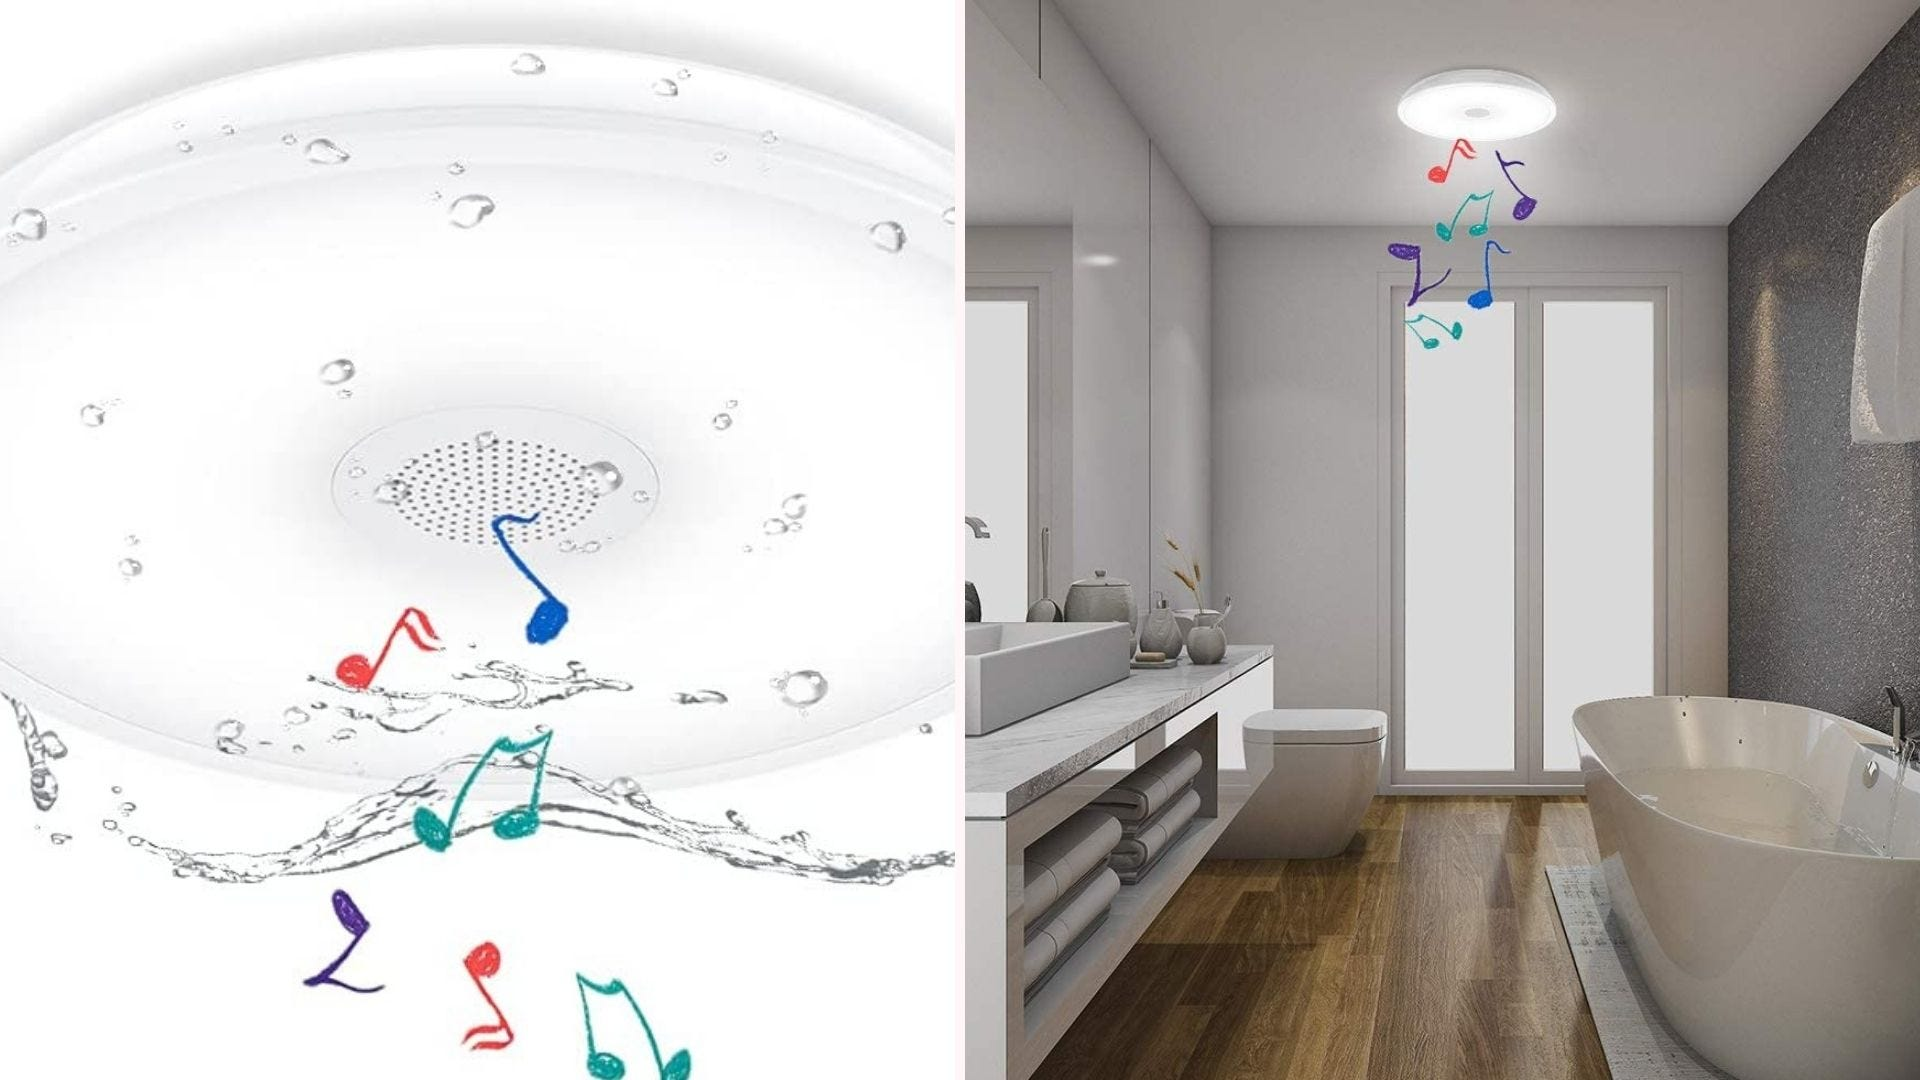 ceiling-mounted white light showing it is waterproof and plays music; it's shown in a bathroom